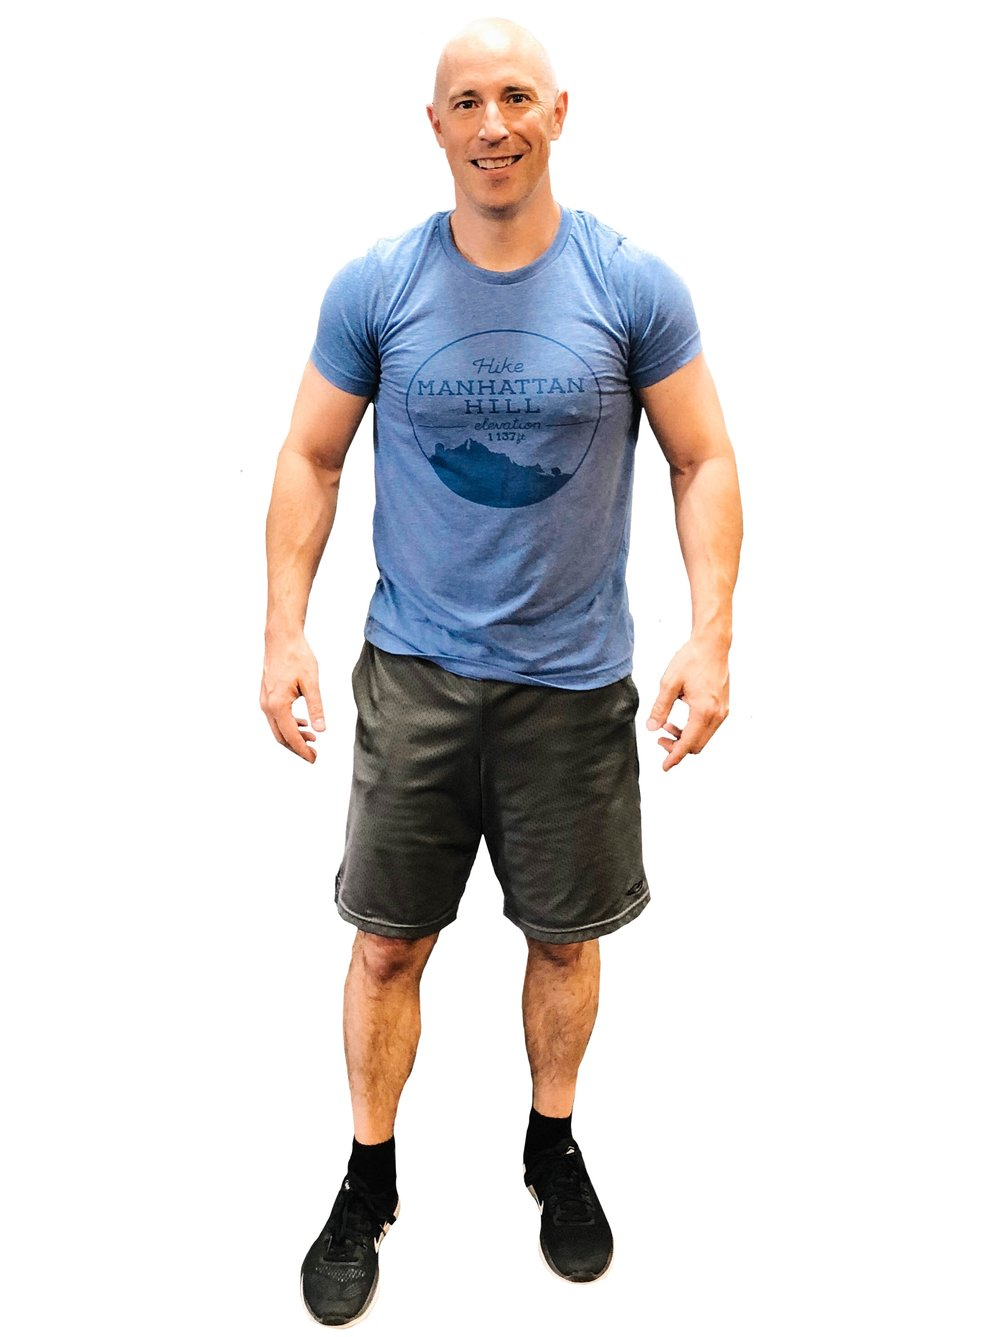 This is me, looking all SWOLE.  (I'M WORKING ON IT.) #VAUGHNSWOLLER